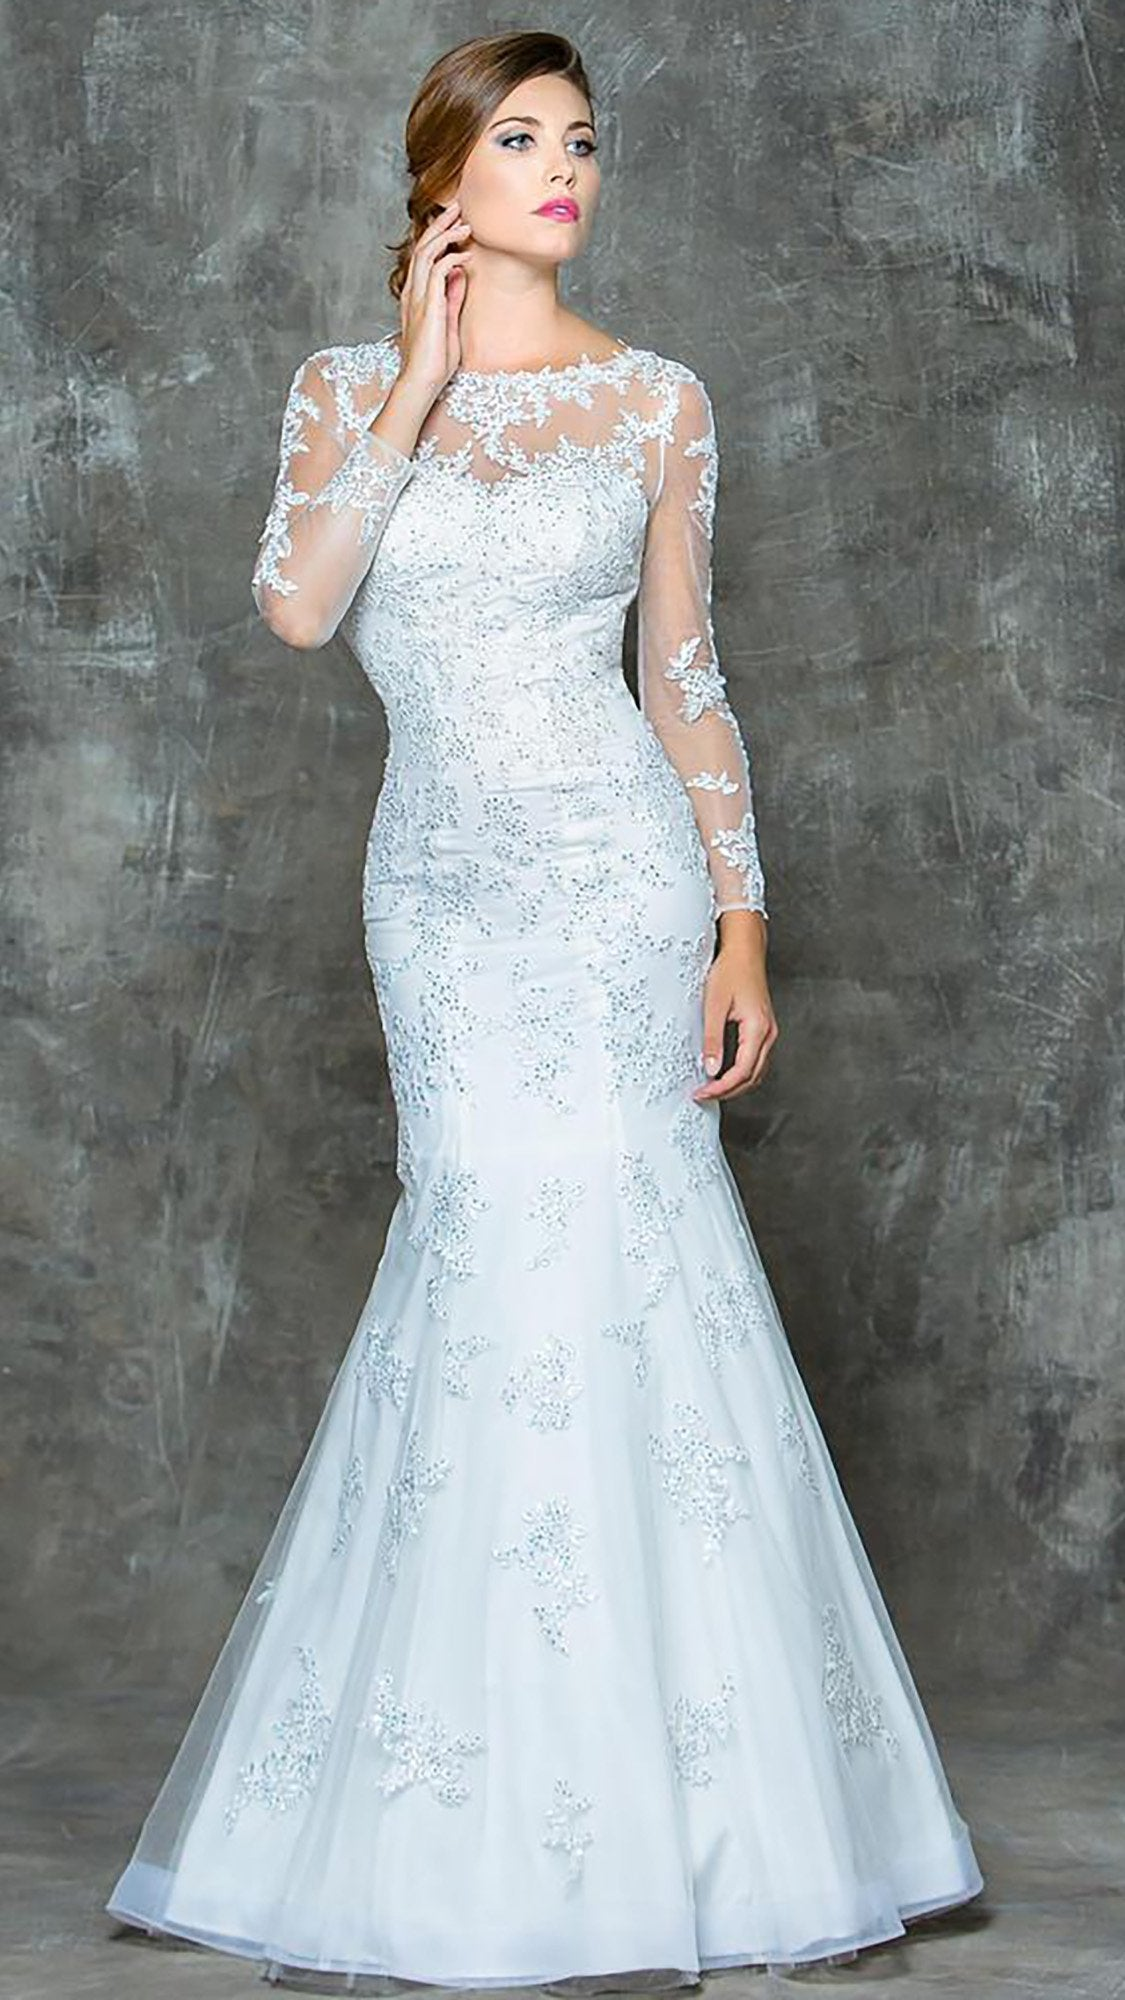 Colors Dress - G665 Long Sleeve Lace Illusion Mermaid Gown  in Gray